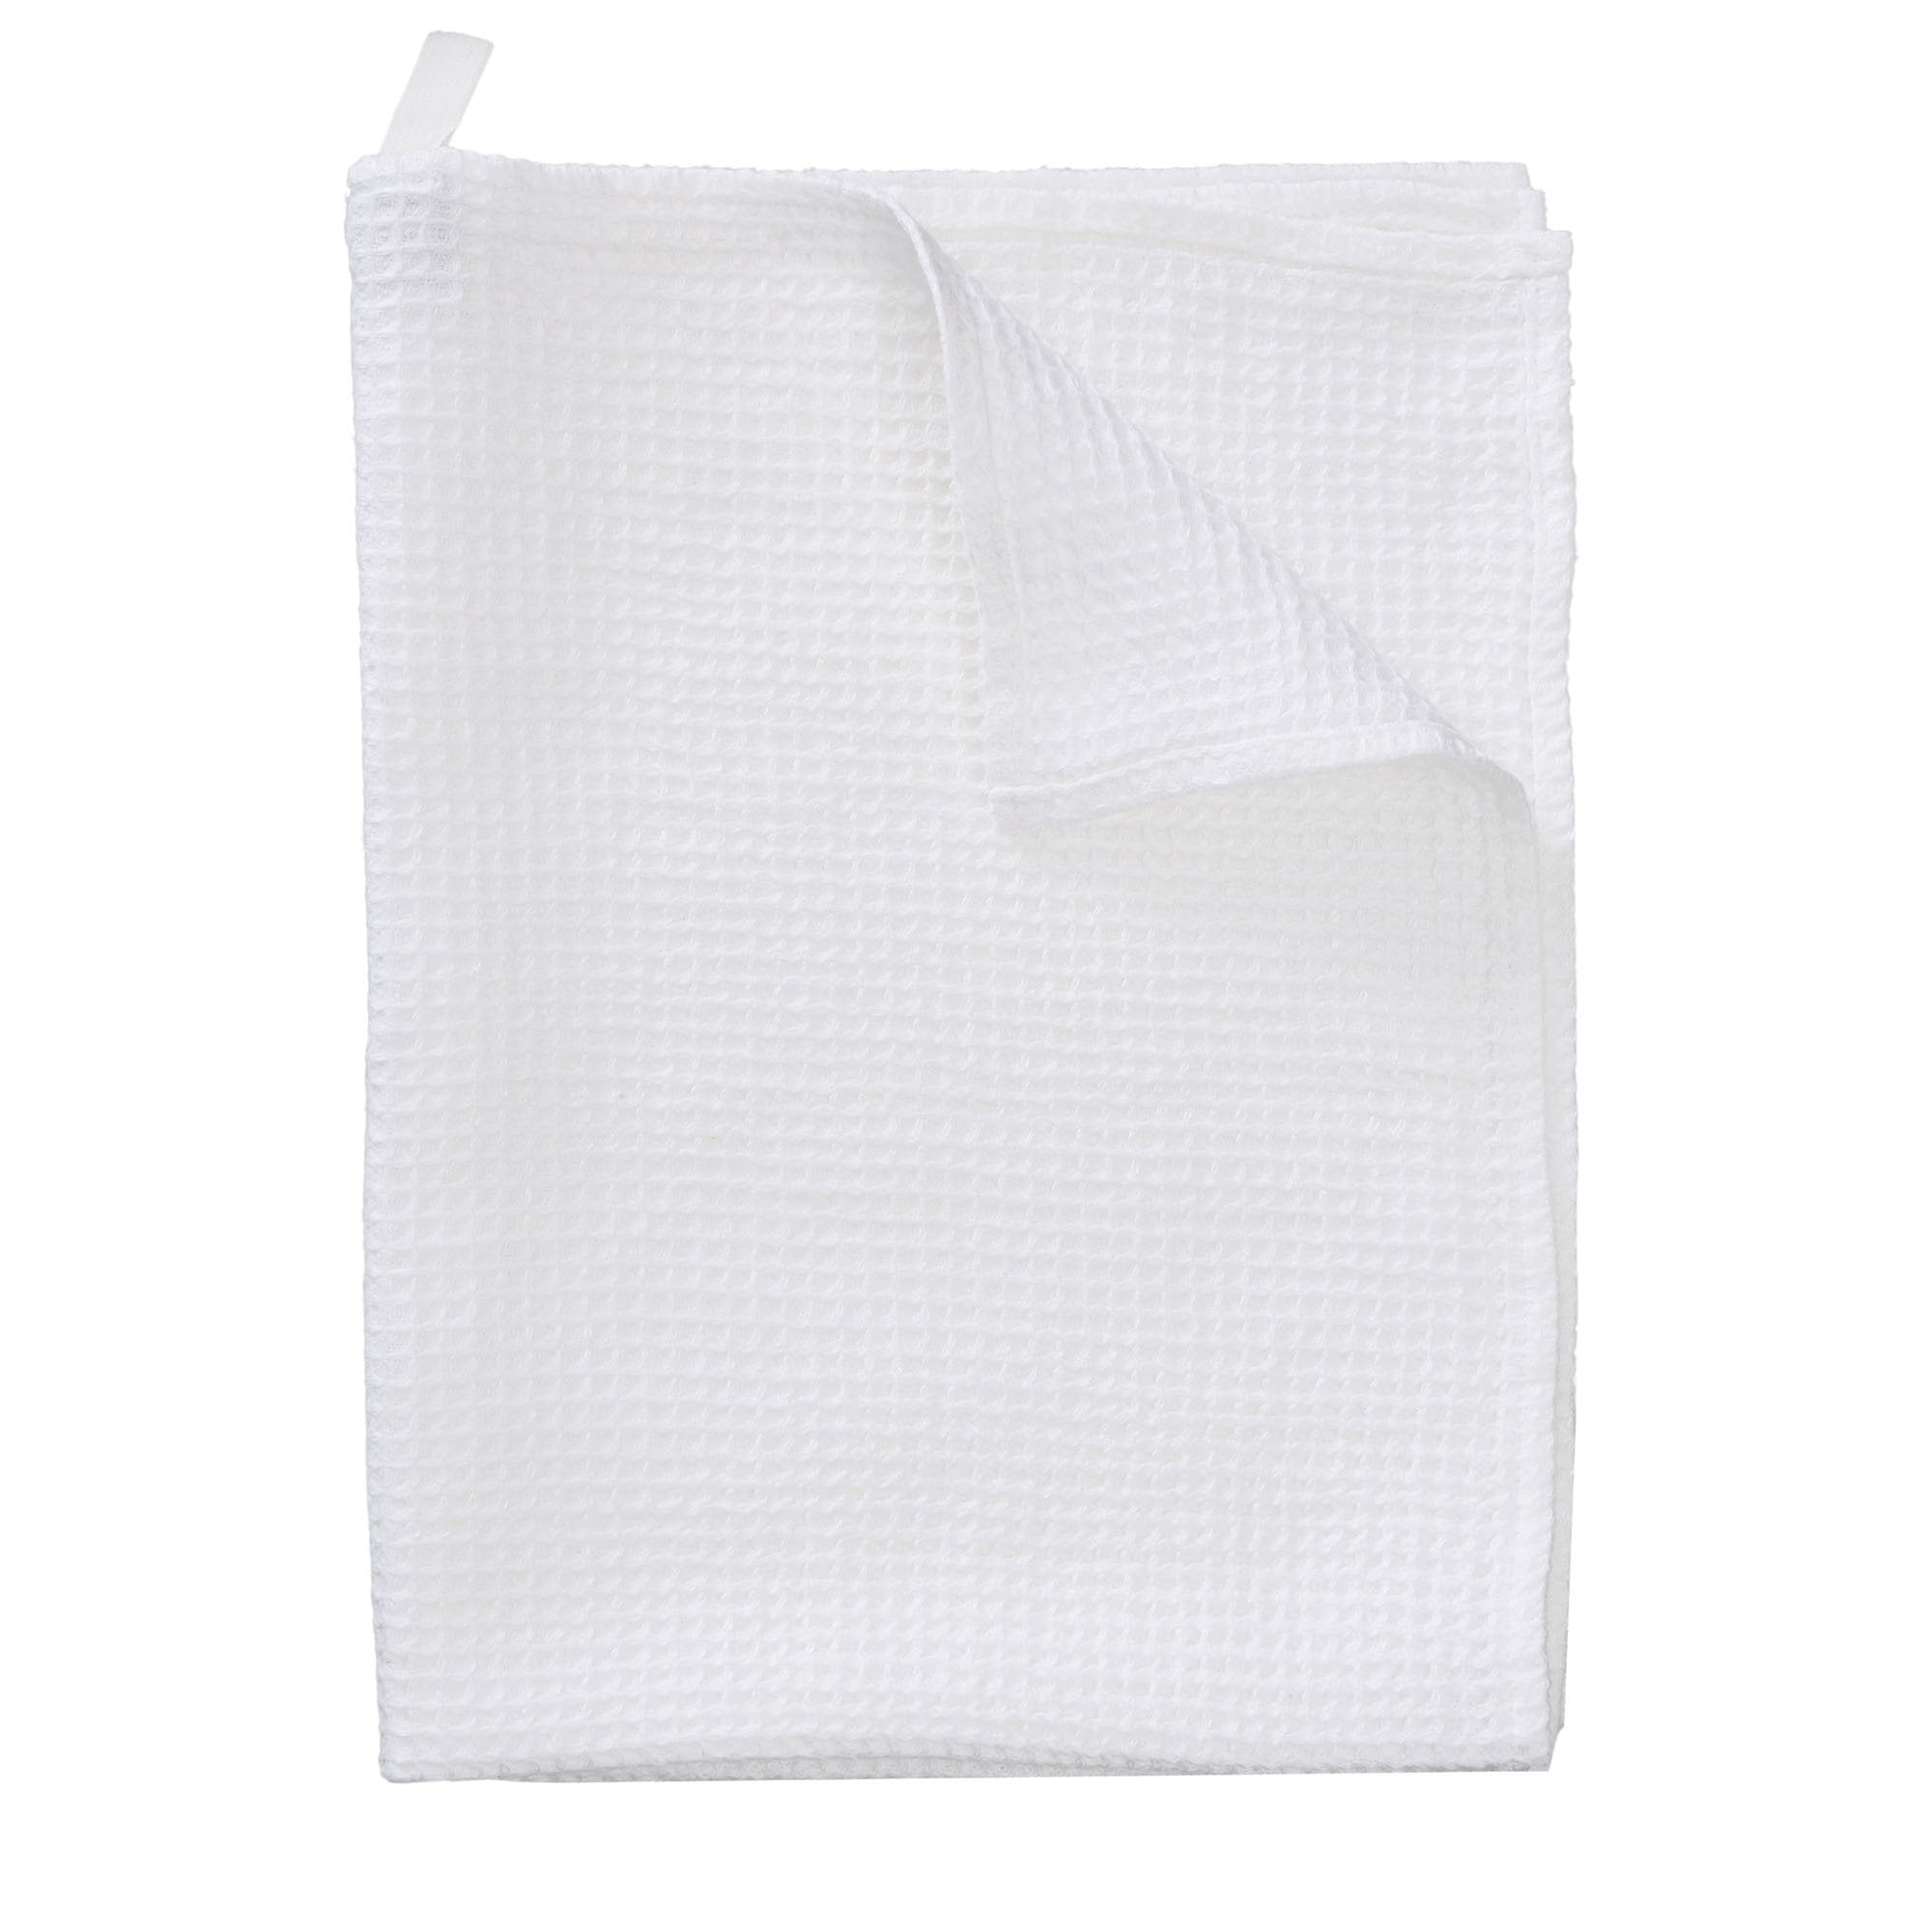 Meeris tea towel, white, 100% linen